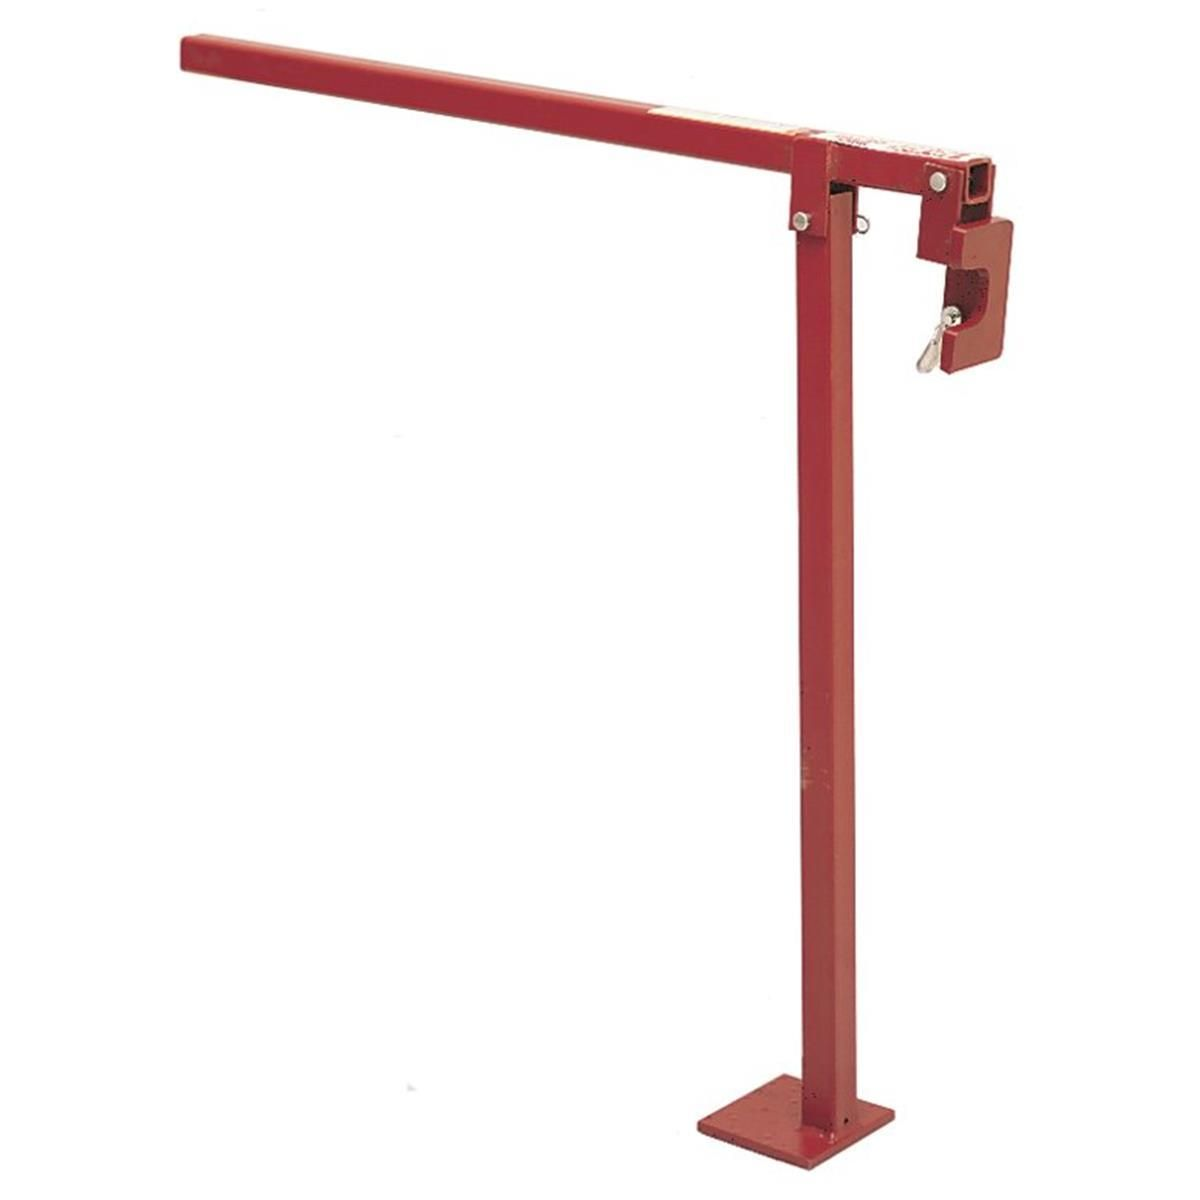 Heavyduty post puller in 2020 galvanized fence post